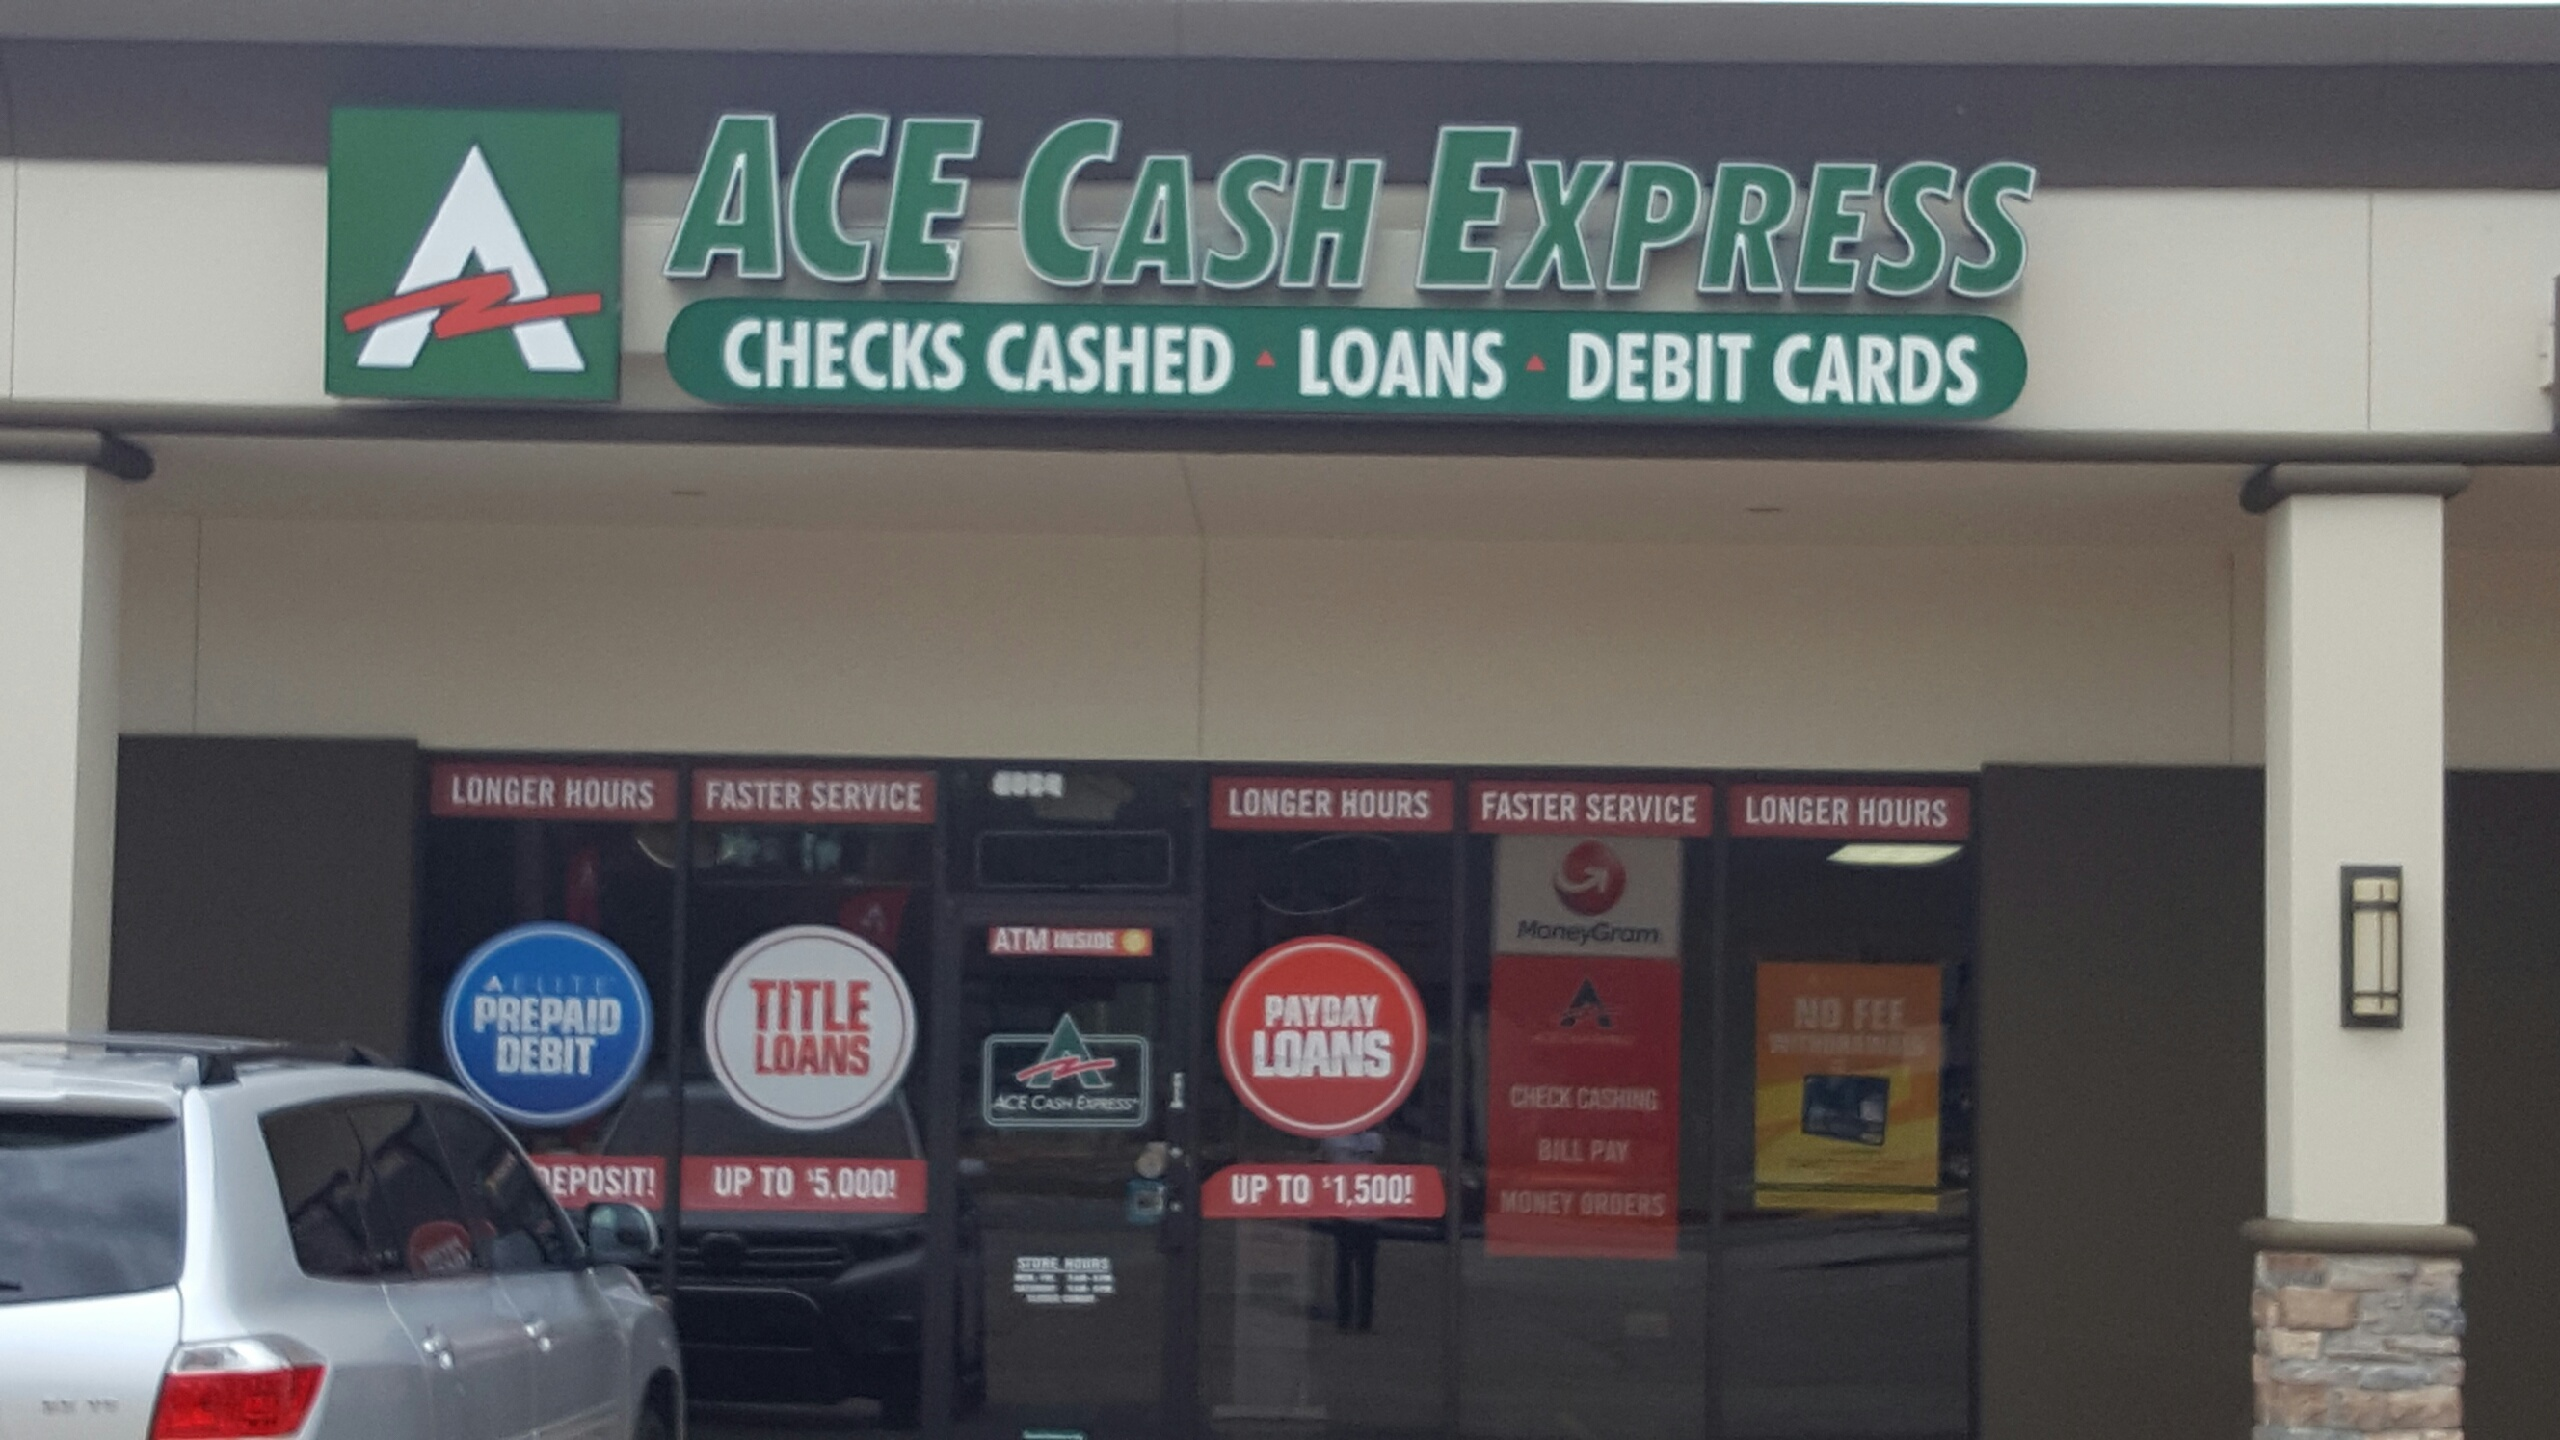 Get A Reduction Of 10% On Loan Fees (Verified) Reward yourself with this ACE Cash Express 10 Percent Off Coupon code. Boost savings bestly with 10+ hand-verified ACE Cash Express promo codes and discounts.